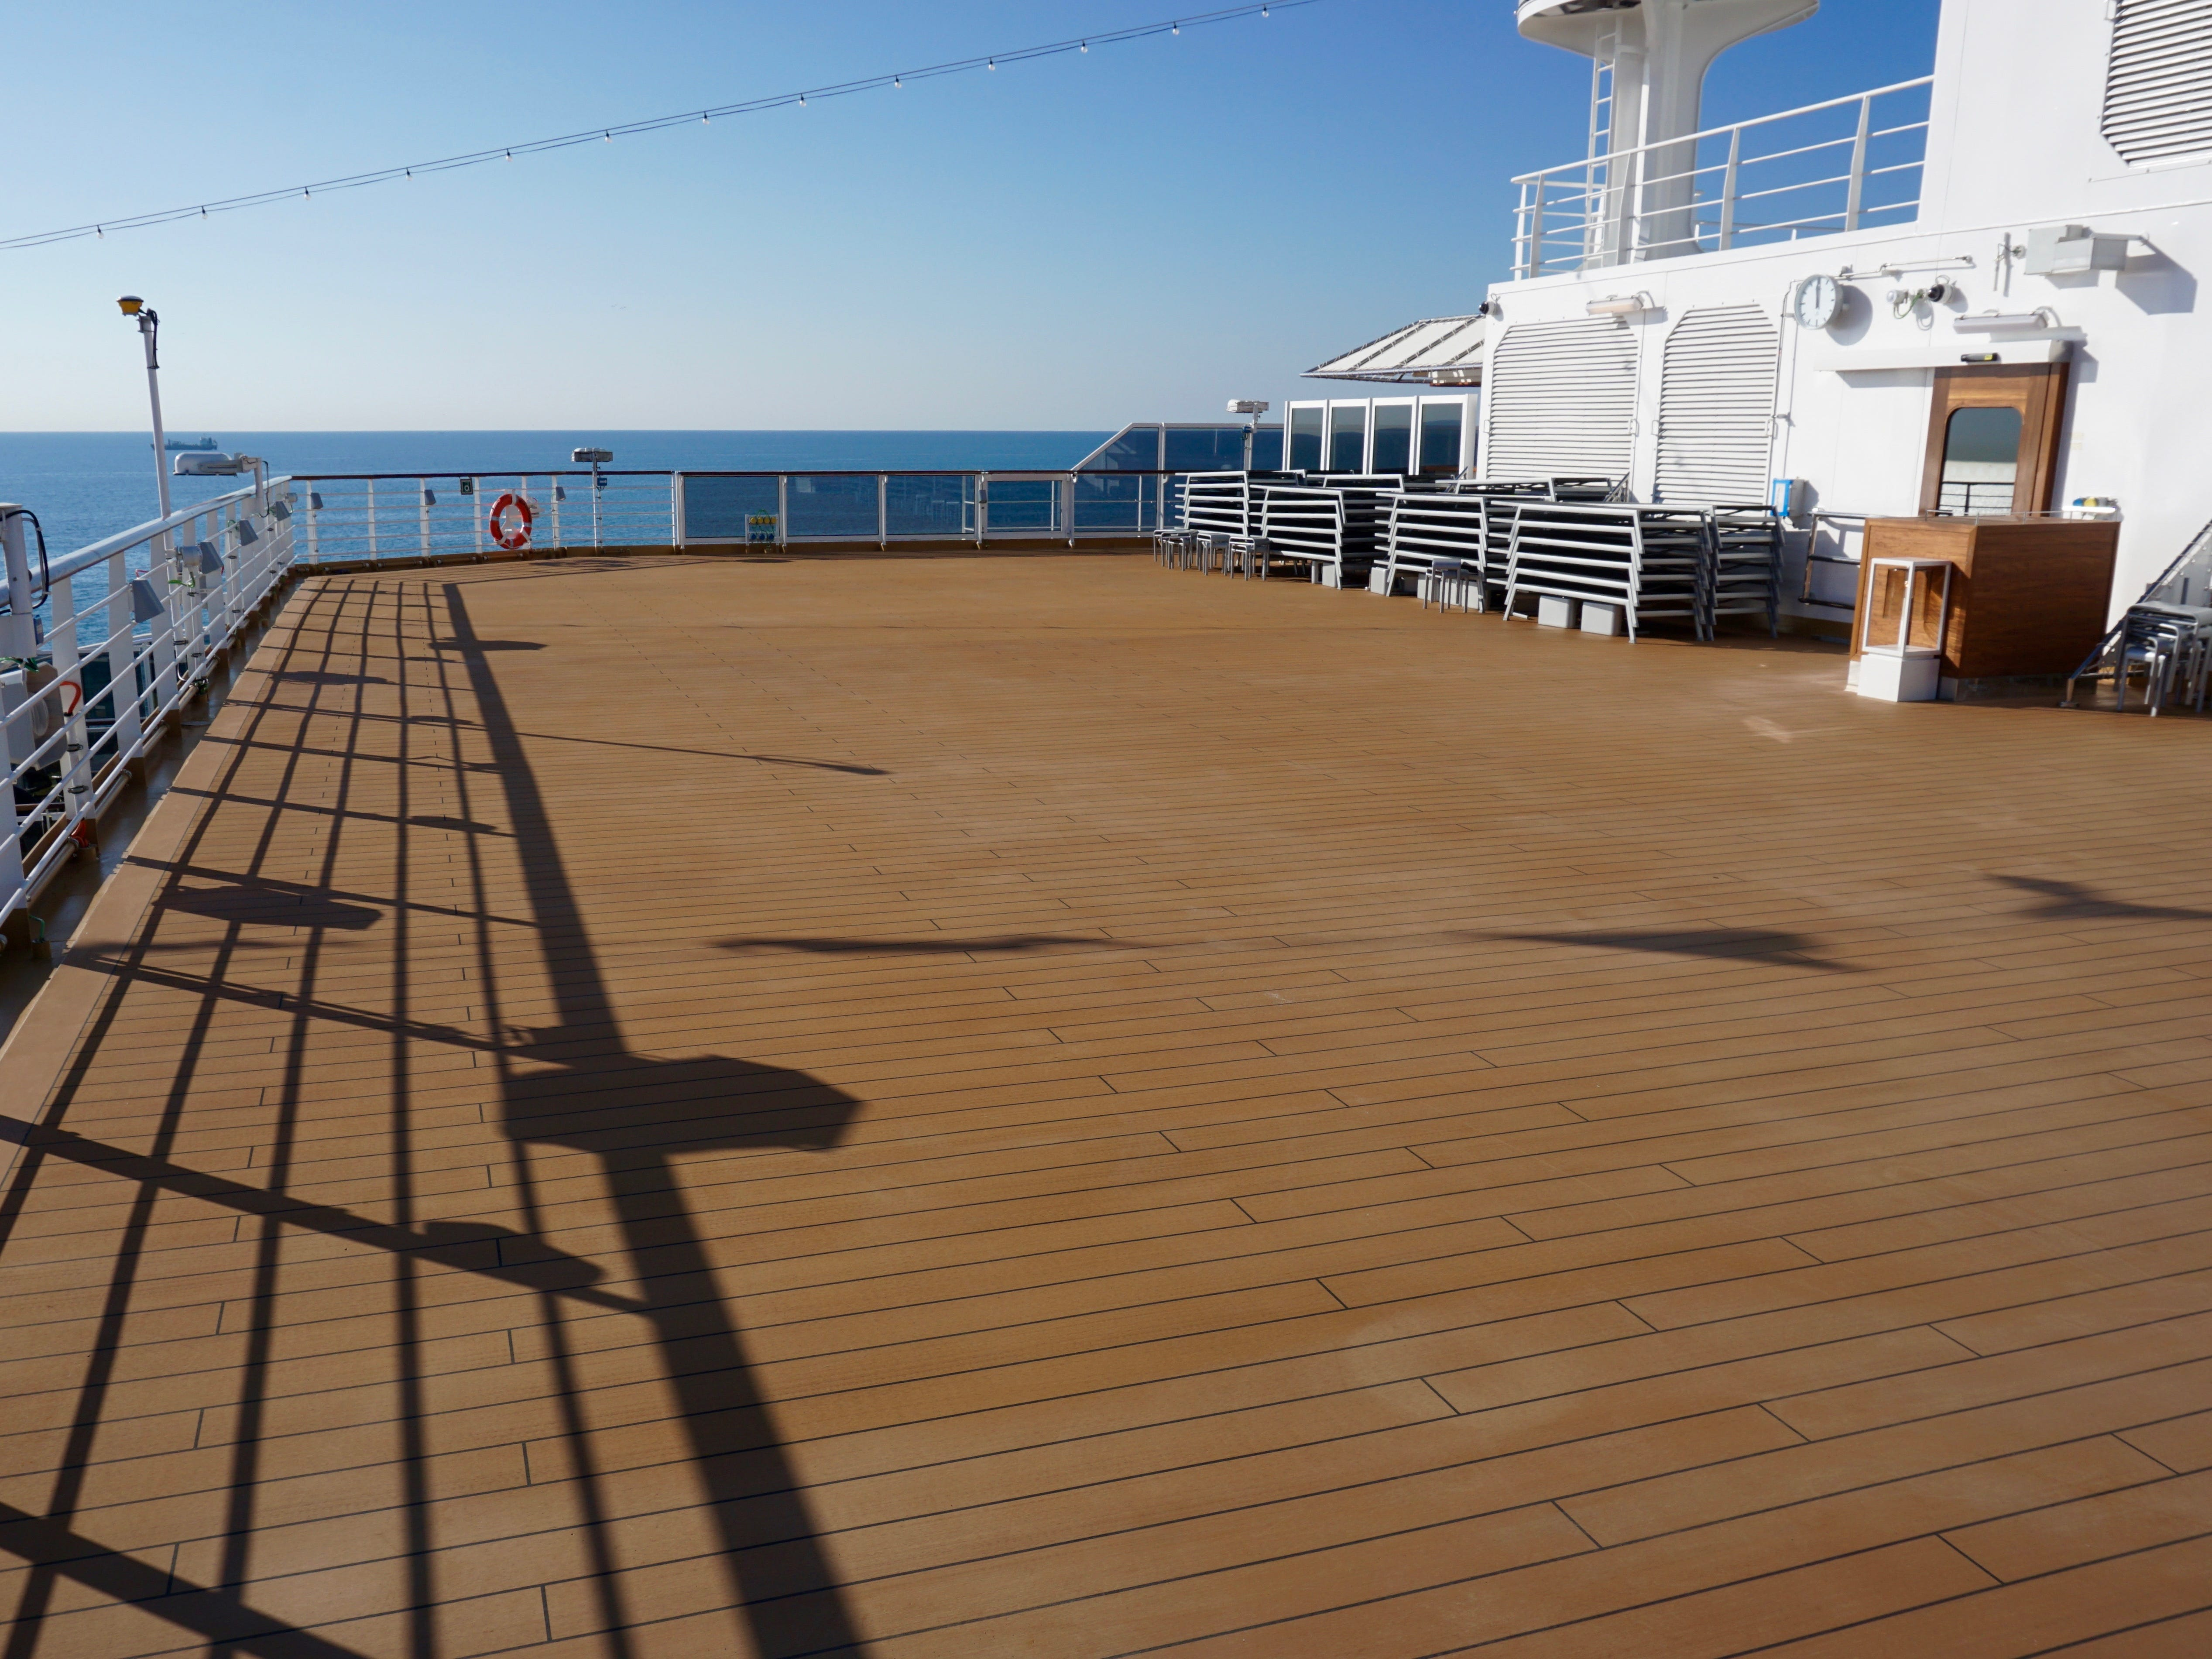 The far aft portion of Deck 11 features an open platform that overlooks the ship's stern.